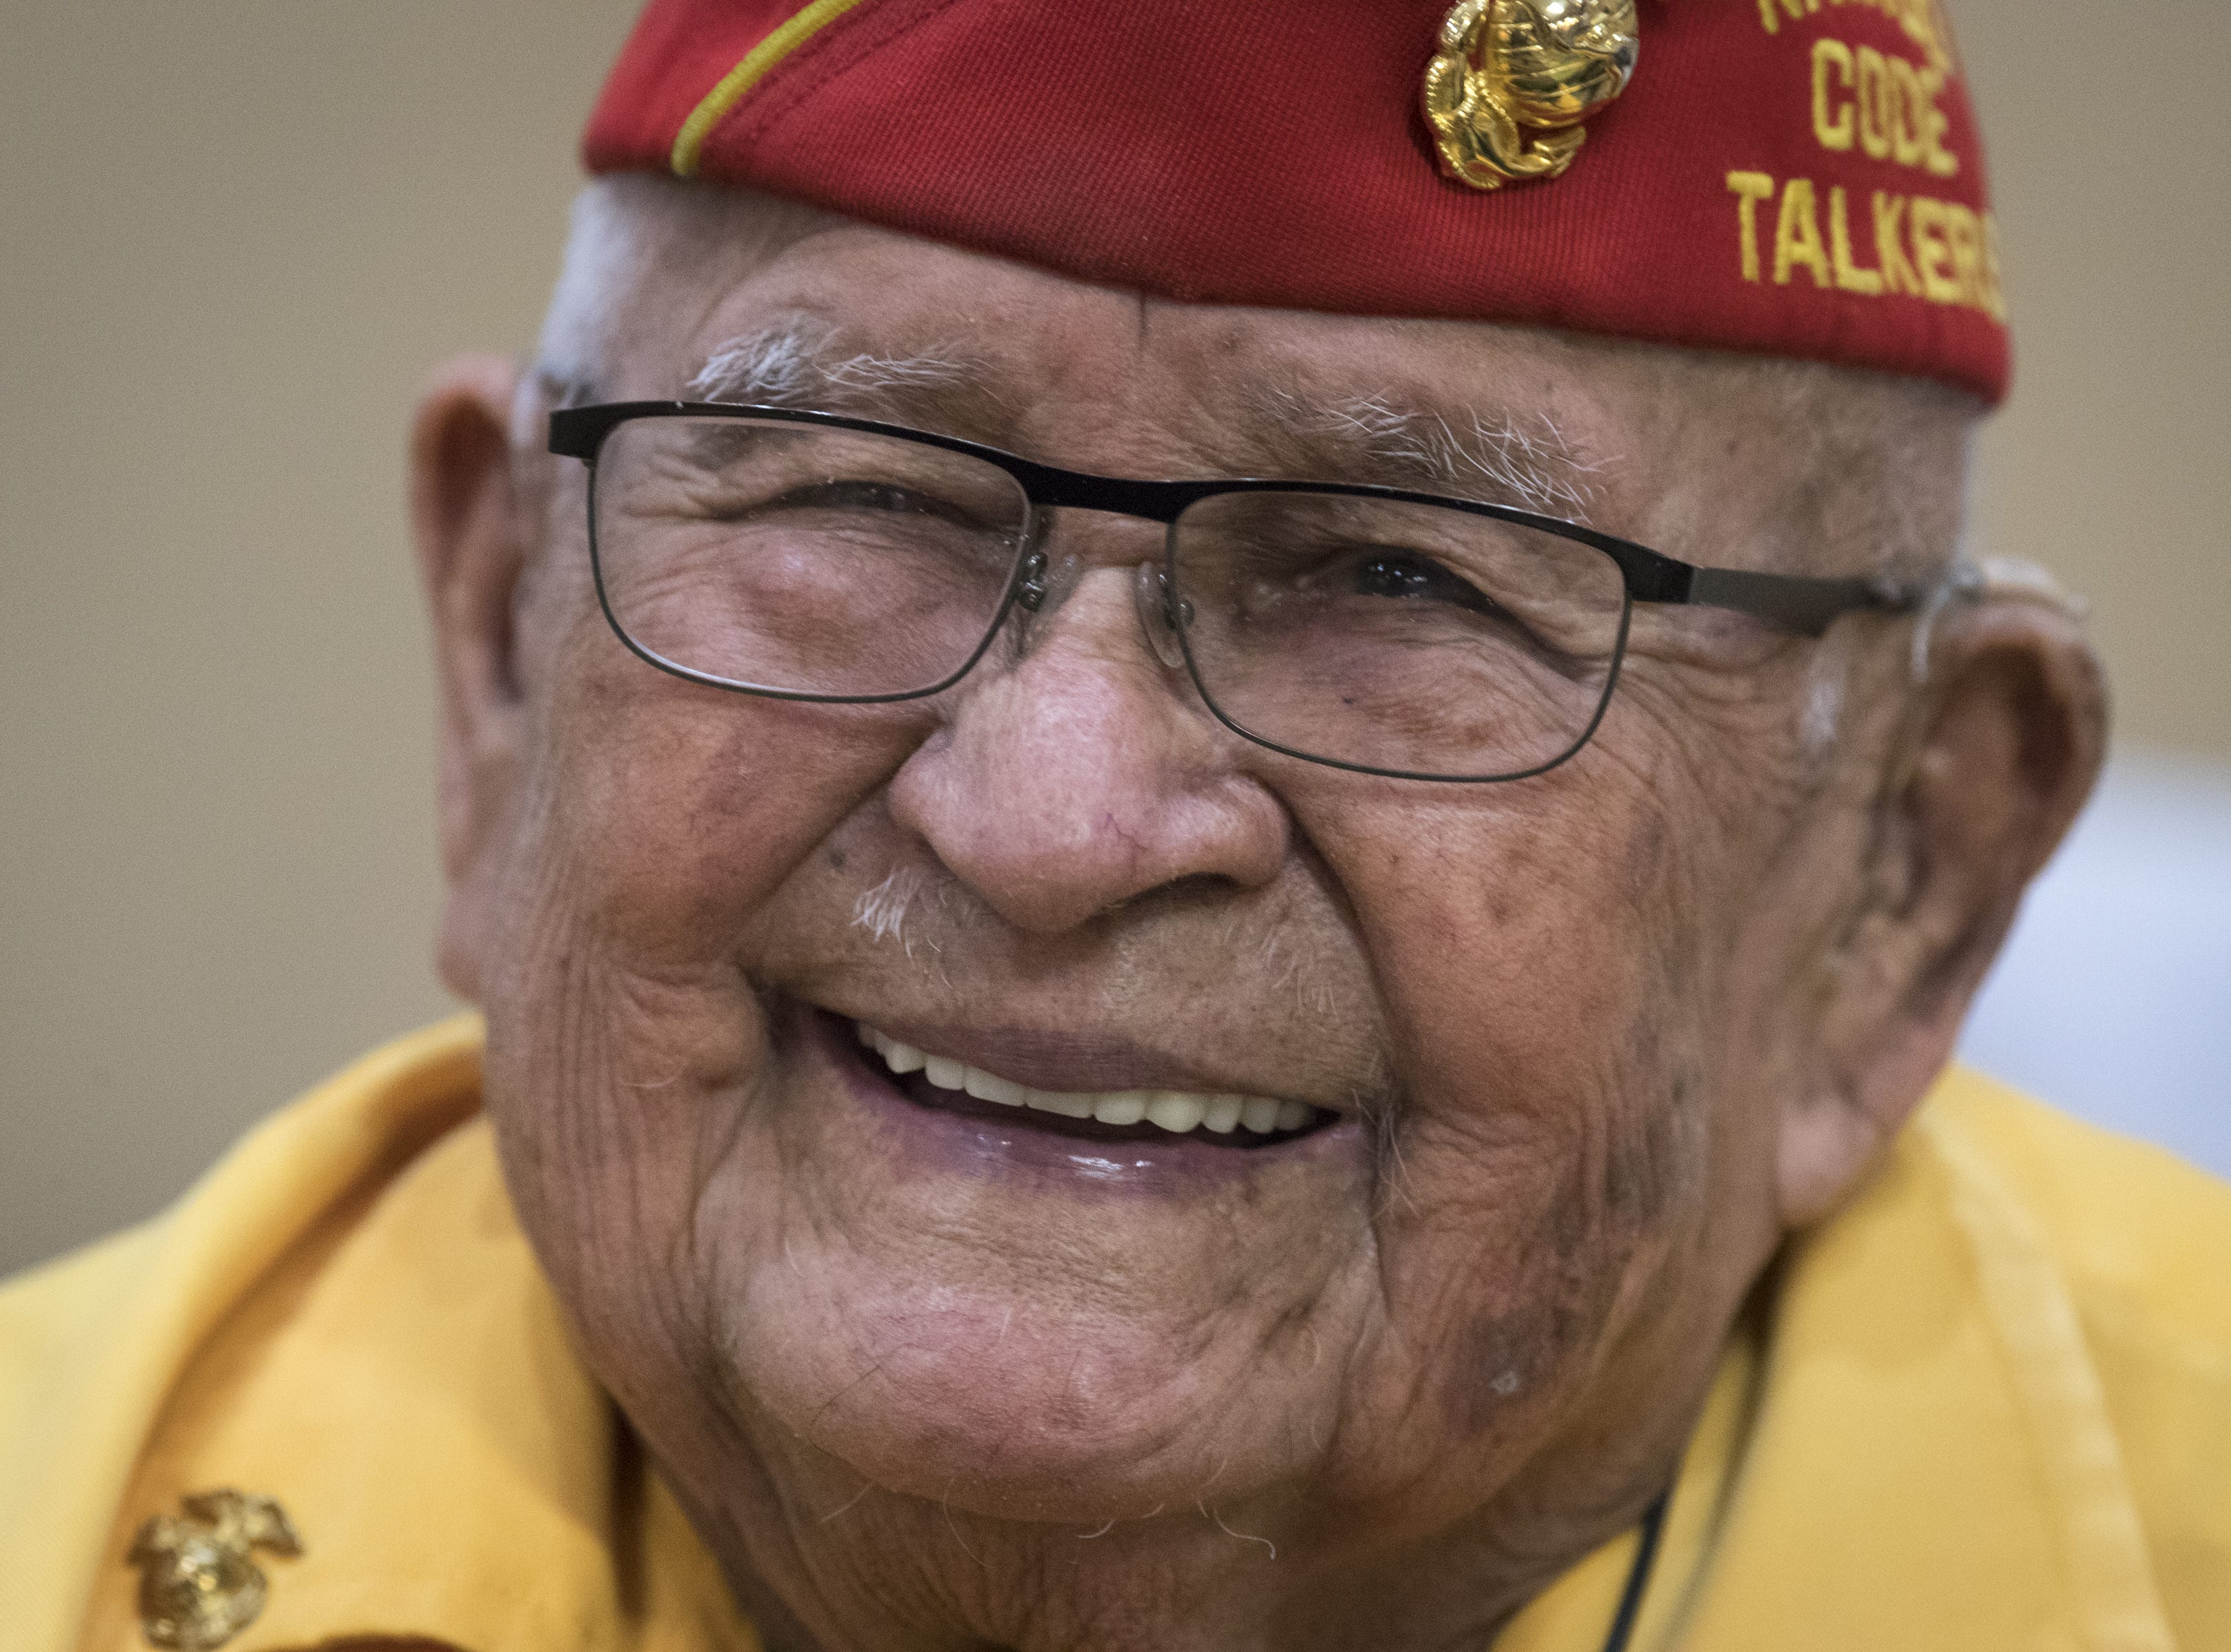 Navajo Code Talker Sam Sandoval talks with guests on Aug. 14, 2018, after speaking at the Cortez Cultural Center in Cortez, Colorado.